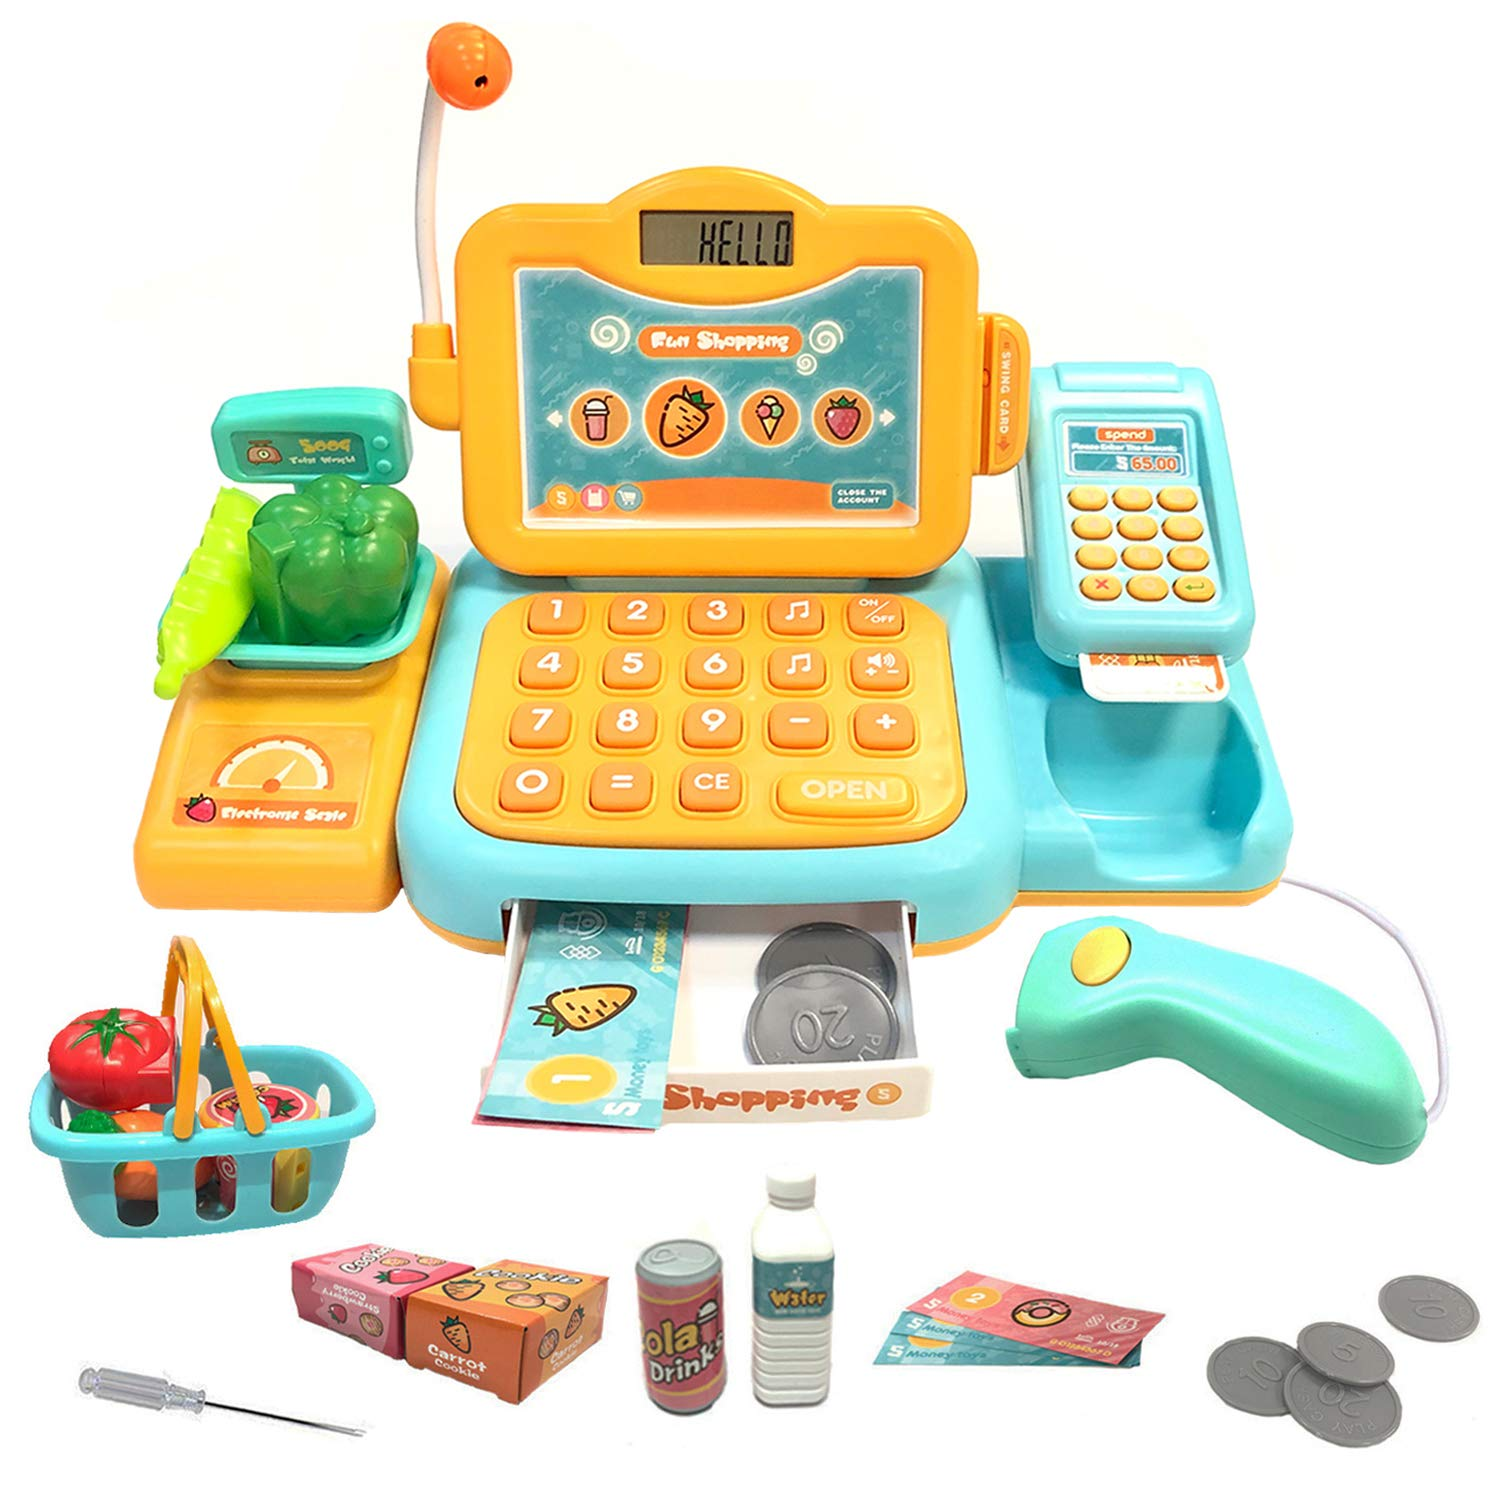 YYoomi Pretend Play Educational Cash Register Toy Classic Counting Toy with Microphone/ Calculator/ Scanner/ Sound/ Music for Kids & Toddlers & Preschoolers (Yellow)